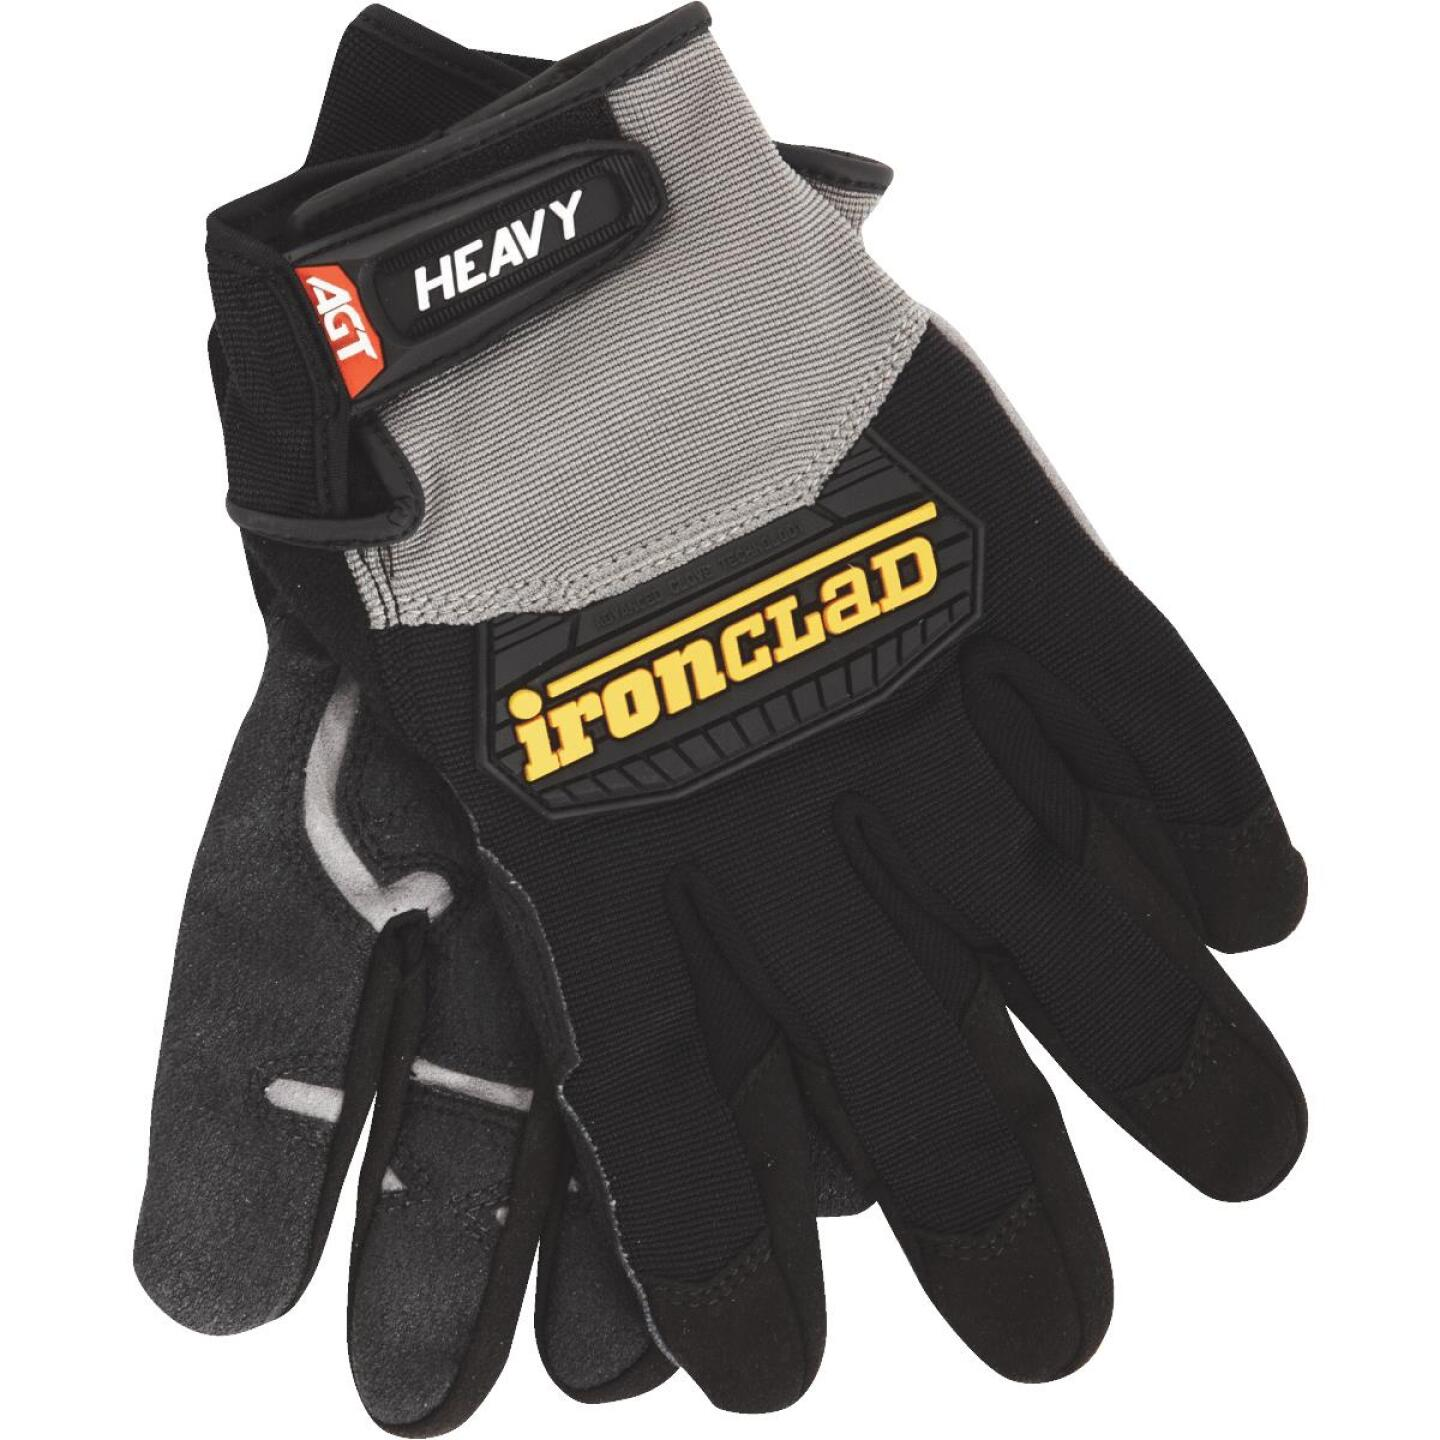 Ironclad Heavy Utility Men's XL Synthetic Leather High Performance Glove Image 1